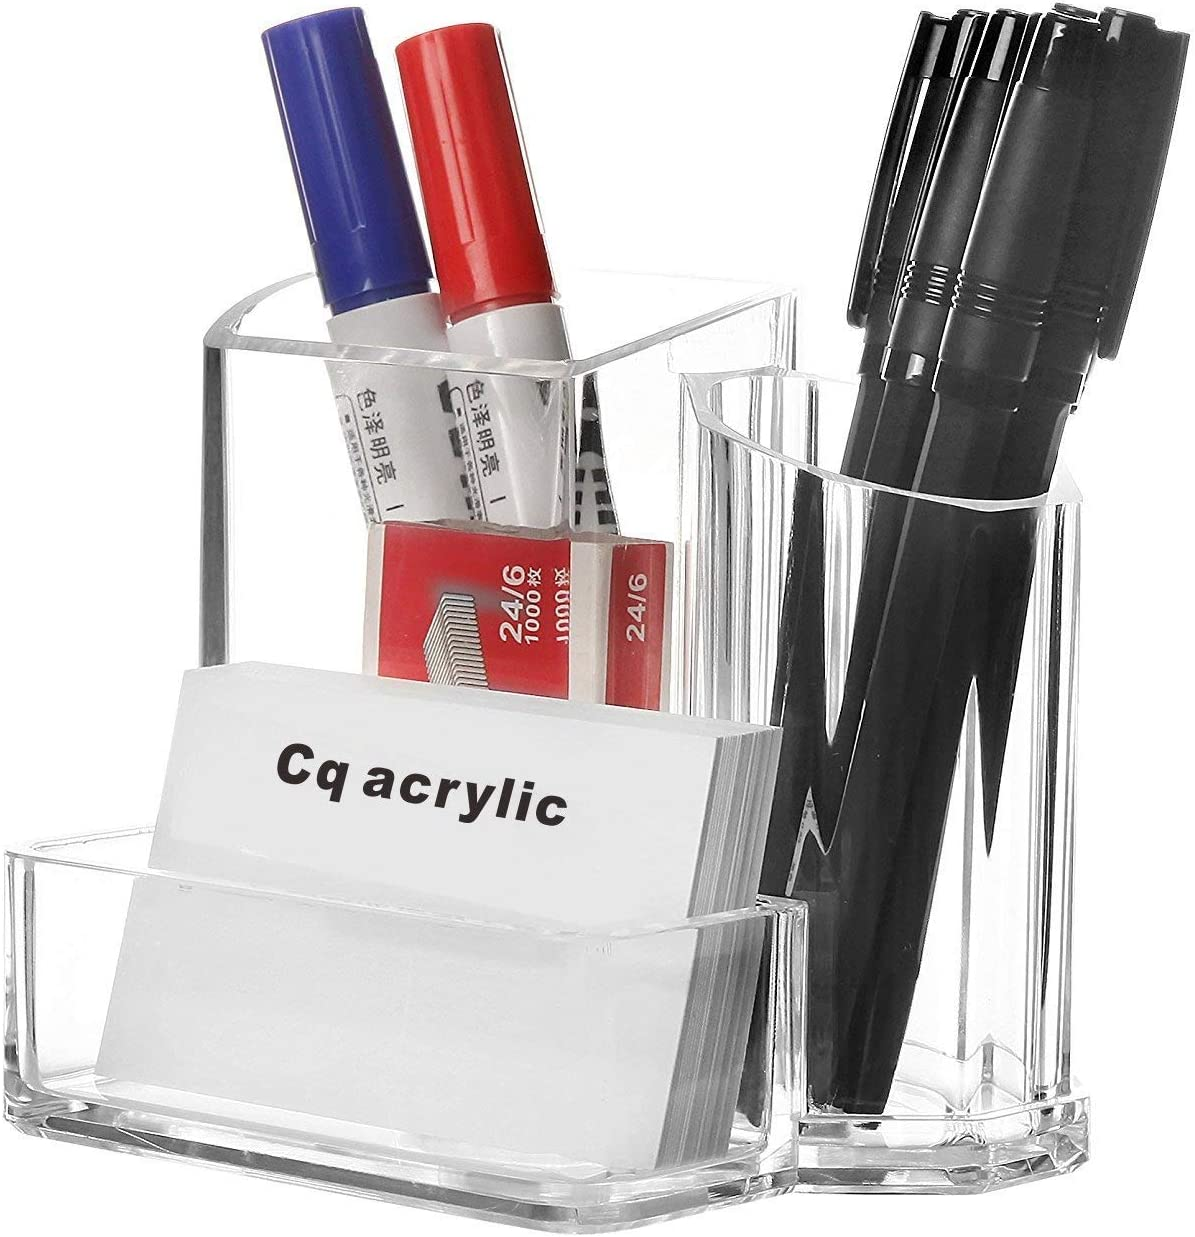 Cq acrylic Pen and Pencil Holders Cups Business Card Holder Box Office Supplies Desktop Organizer Storage,5.4x3.8x4.4 inch Pack of 1